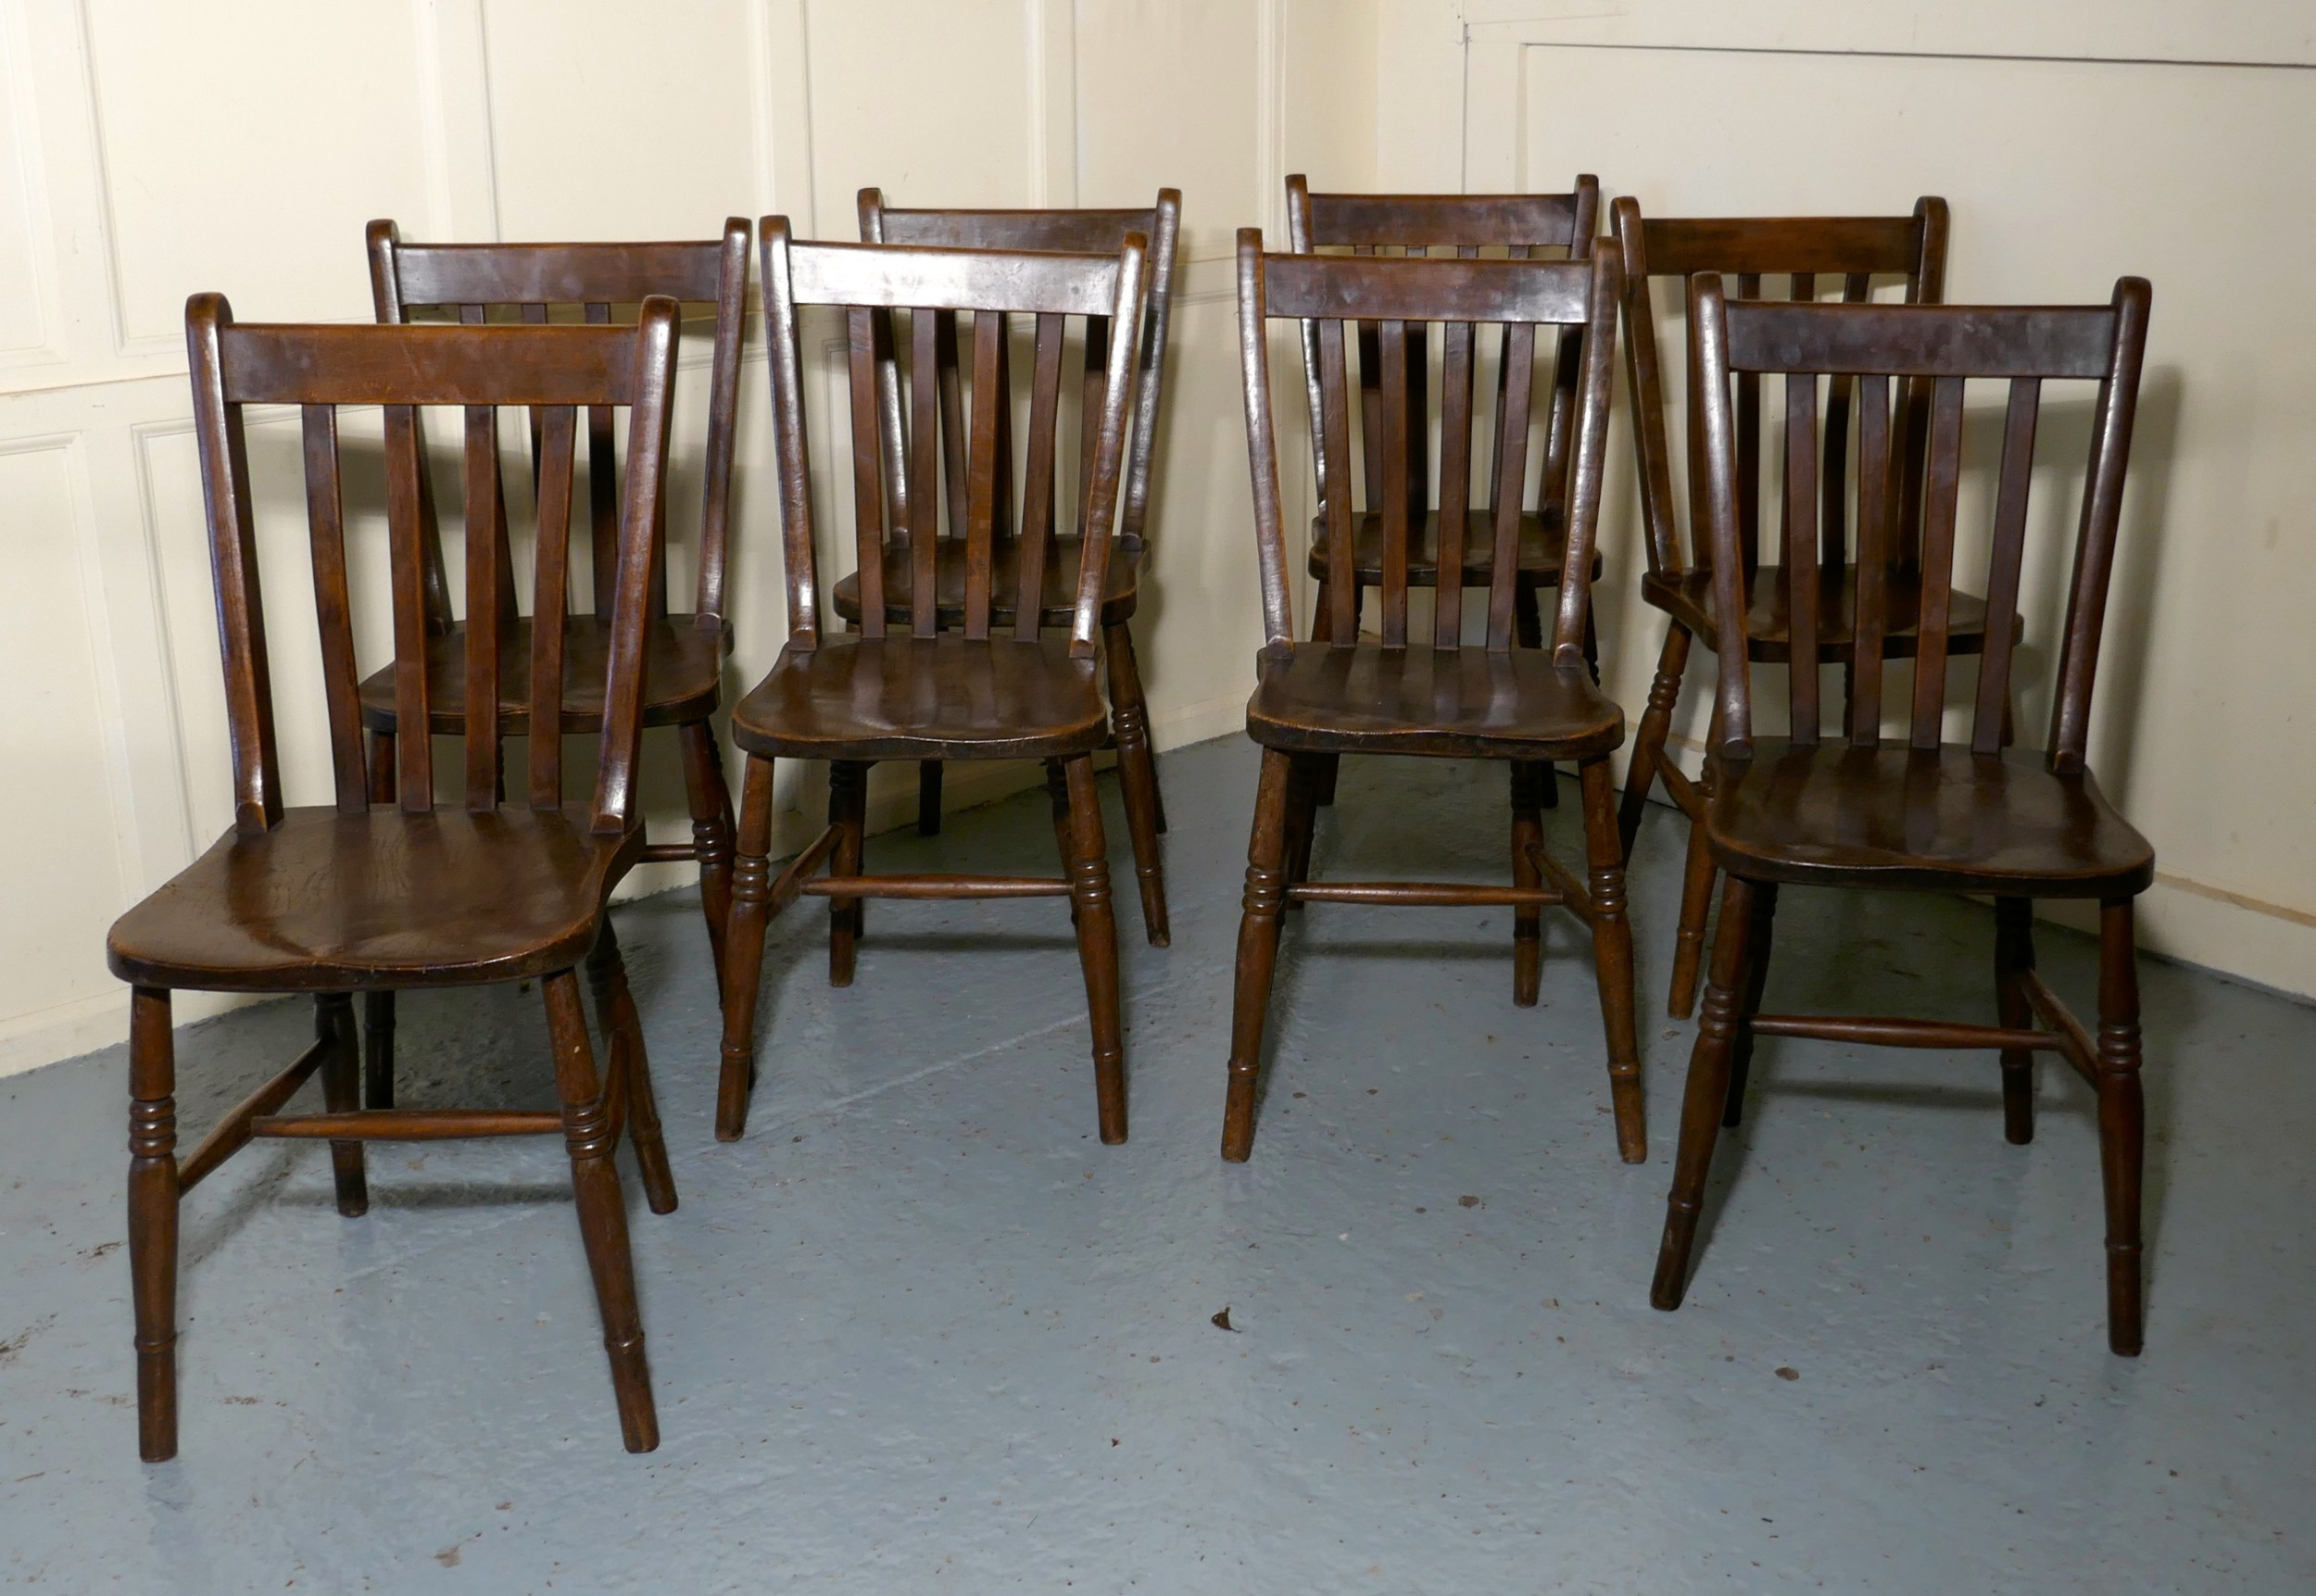 set of 8 19th century traditional slat back farmhouse kitchen chairs